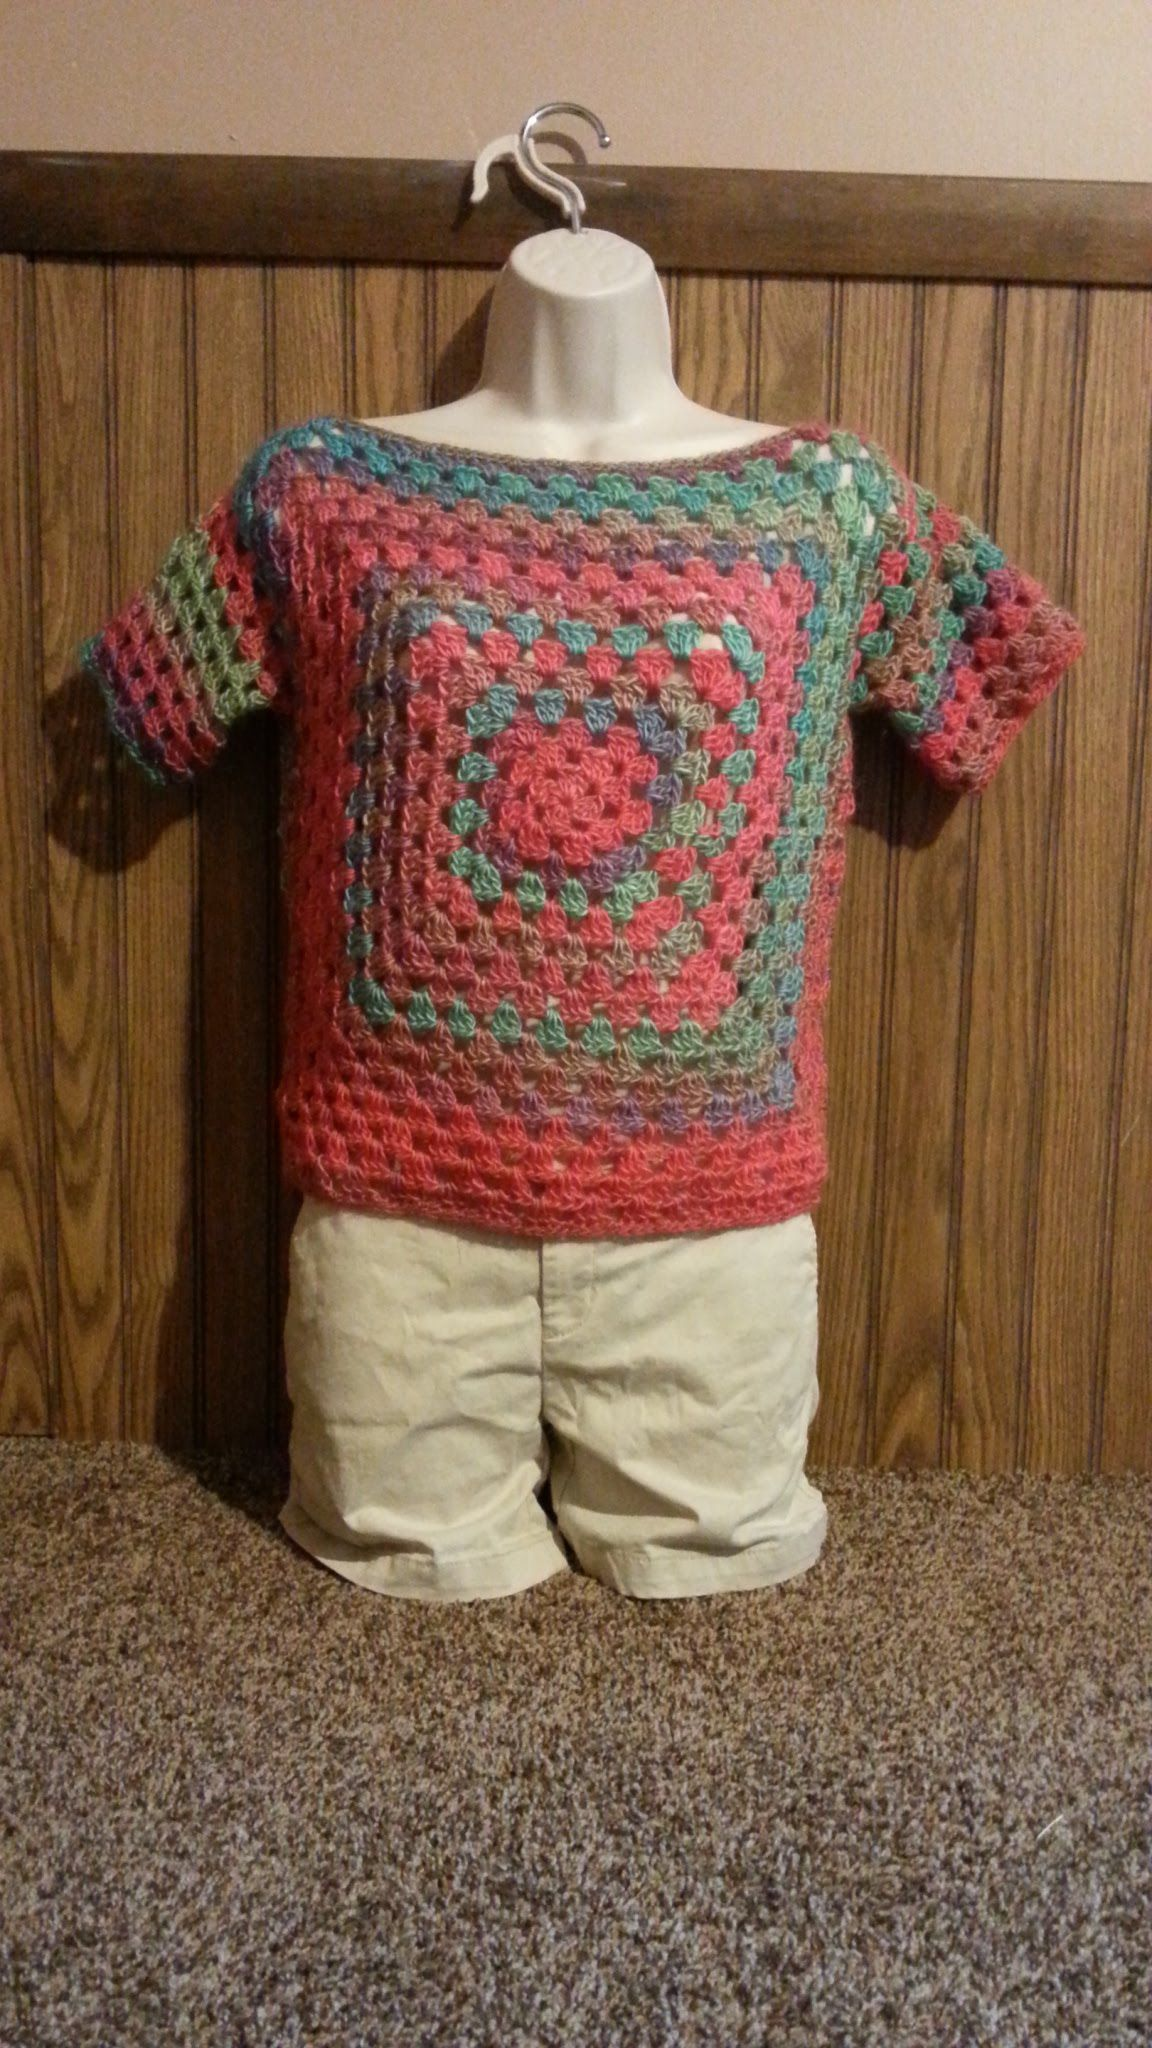 How to #Crochet Easy Granny Square Ladies Top Shirt Blouse #TUTORIAL ...